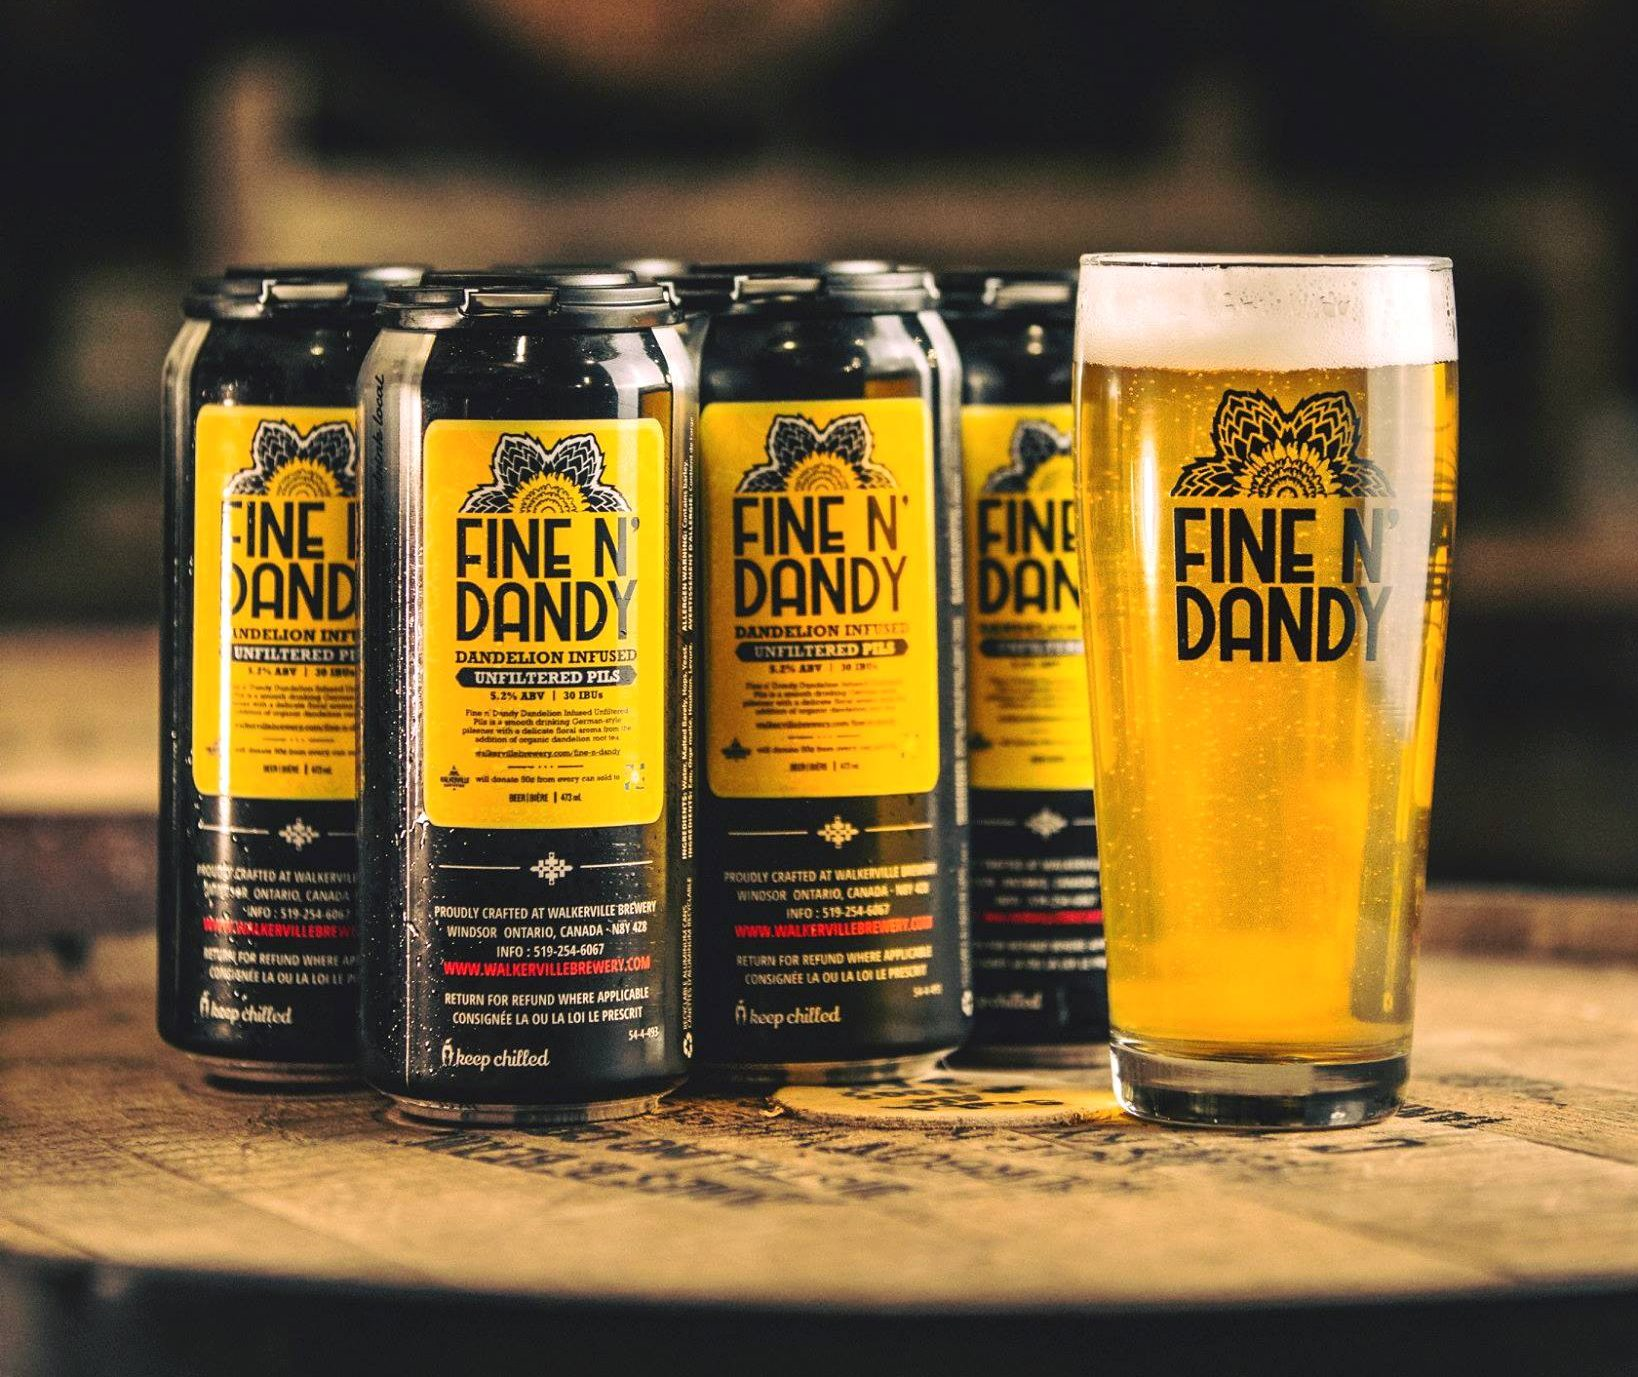 Fine N Dandy was a collaboration between Walkerville Brewery and Craft Heads Brewing Company.